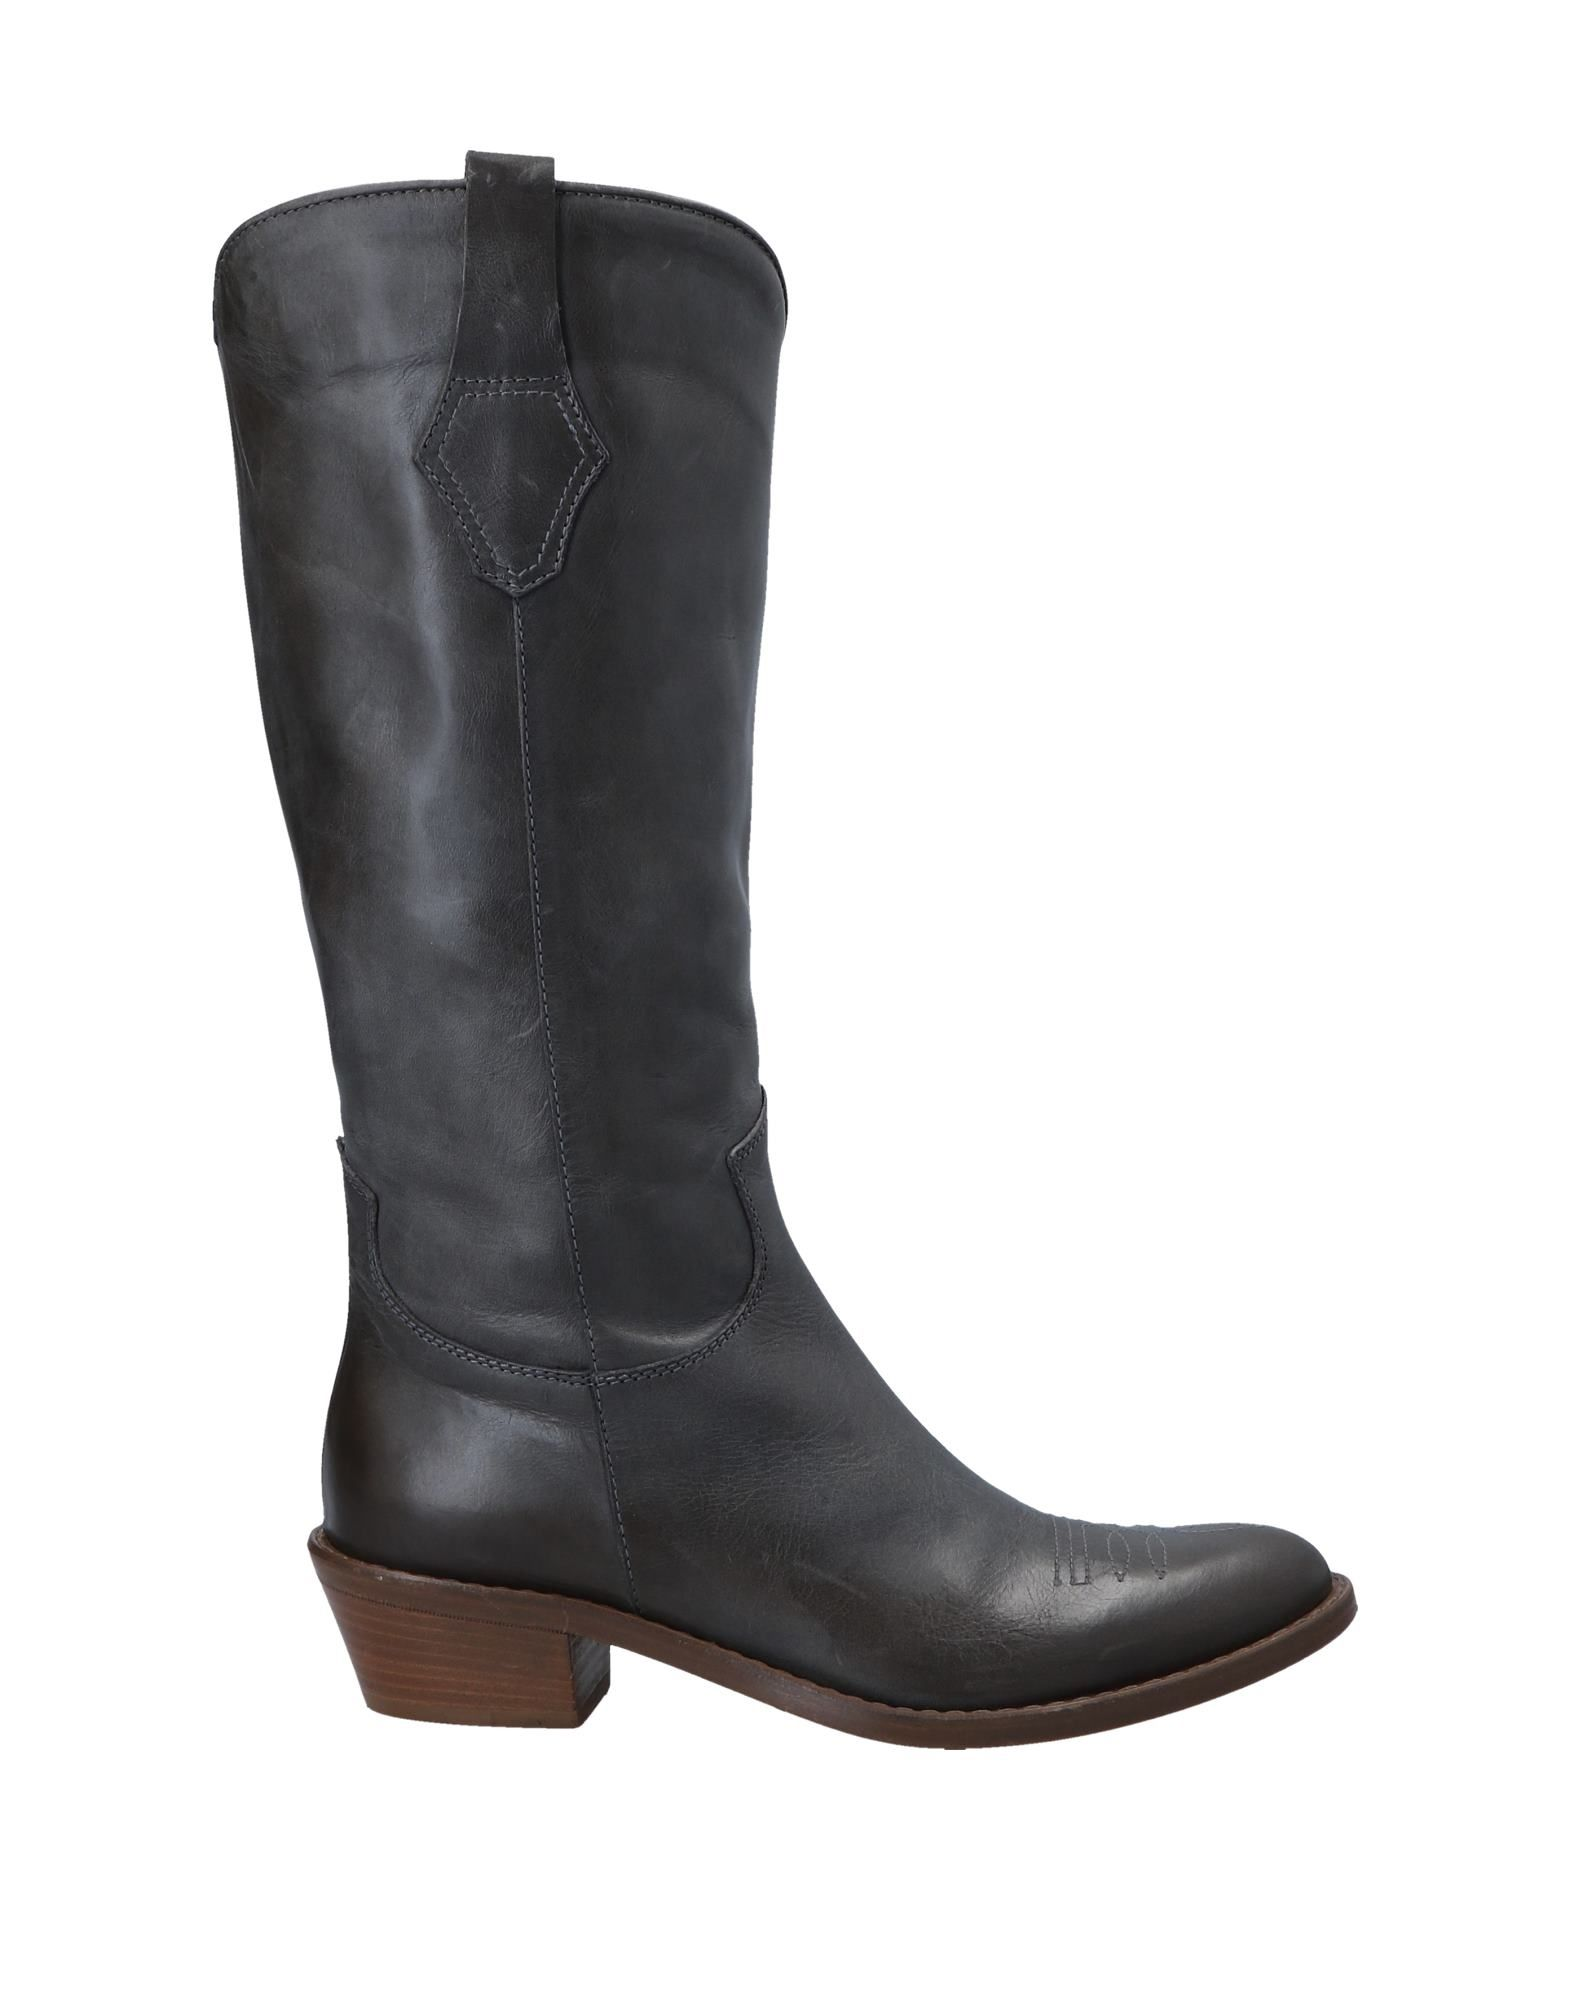 Maria Cristina Boots - Women Maria Cristina Boots online on 11521969DO  United Kingdom - 11521969DO on a95319